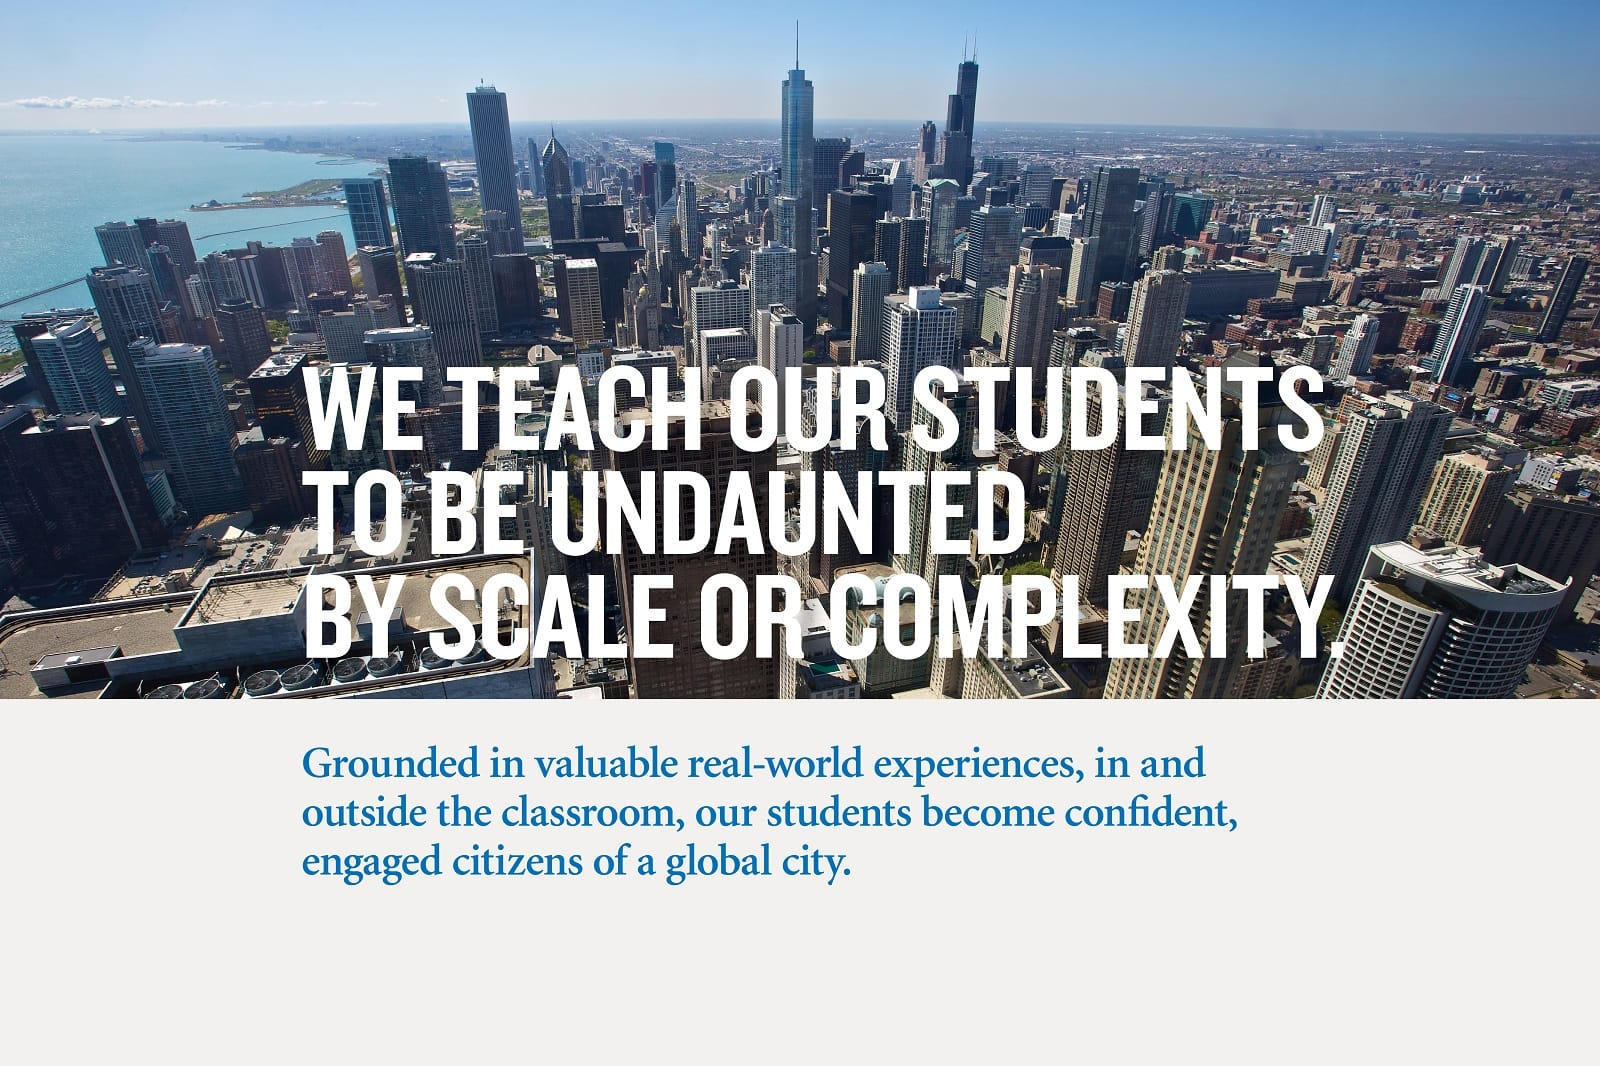 We teach our students to be undaunted by scale or complexity.